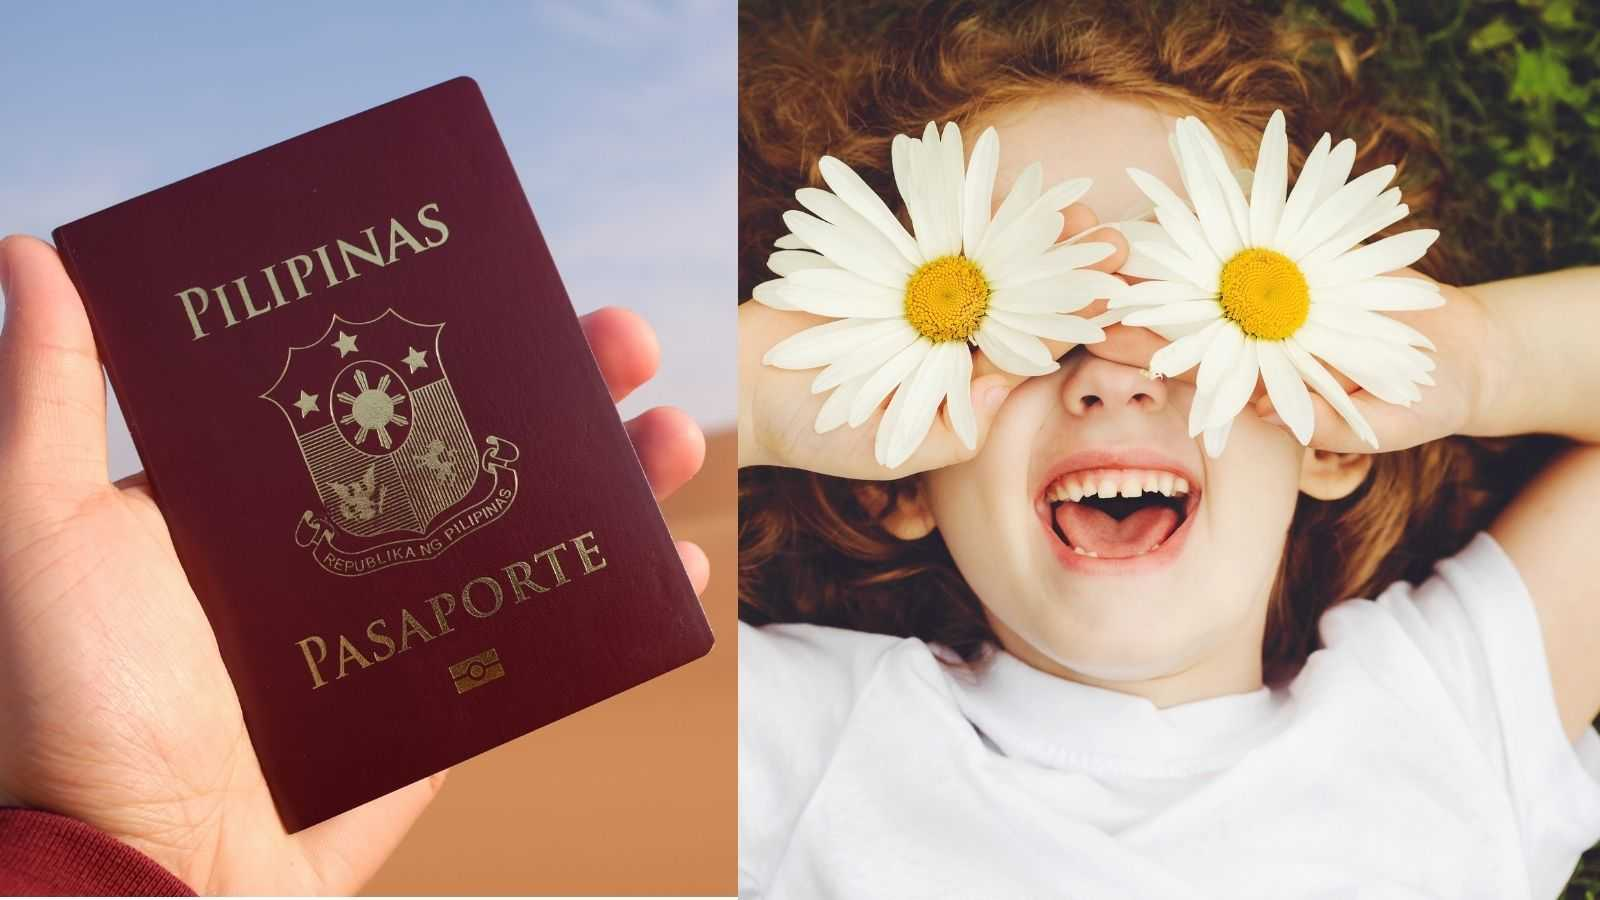 passport requirements for minors philippines